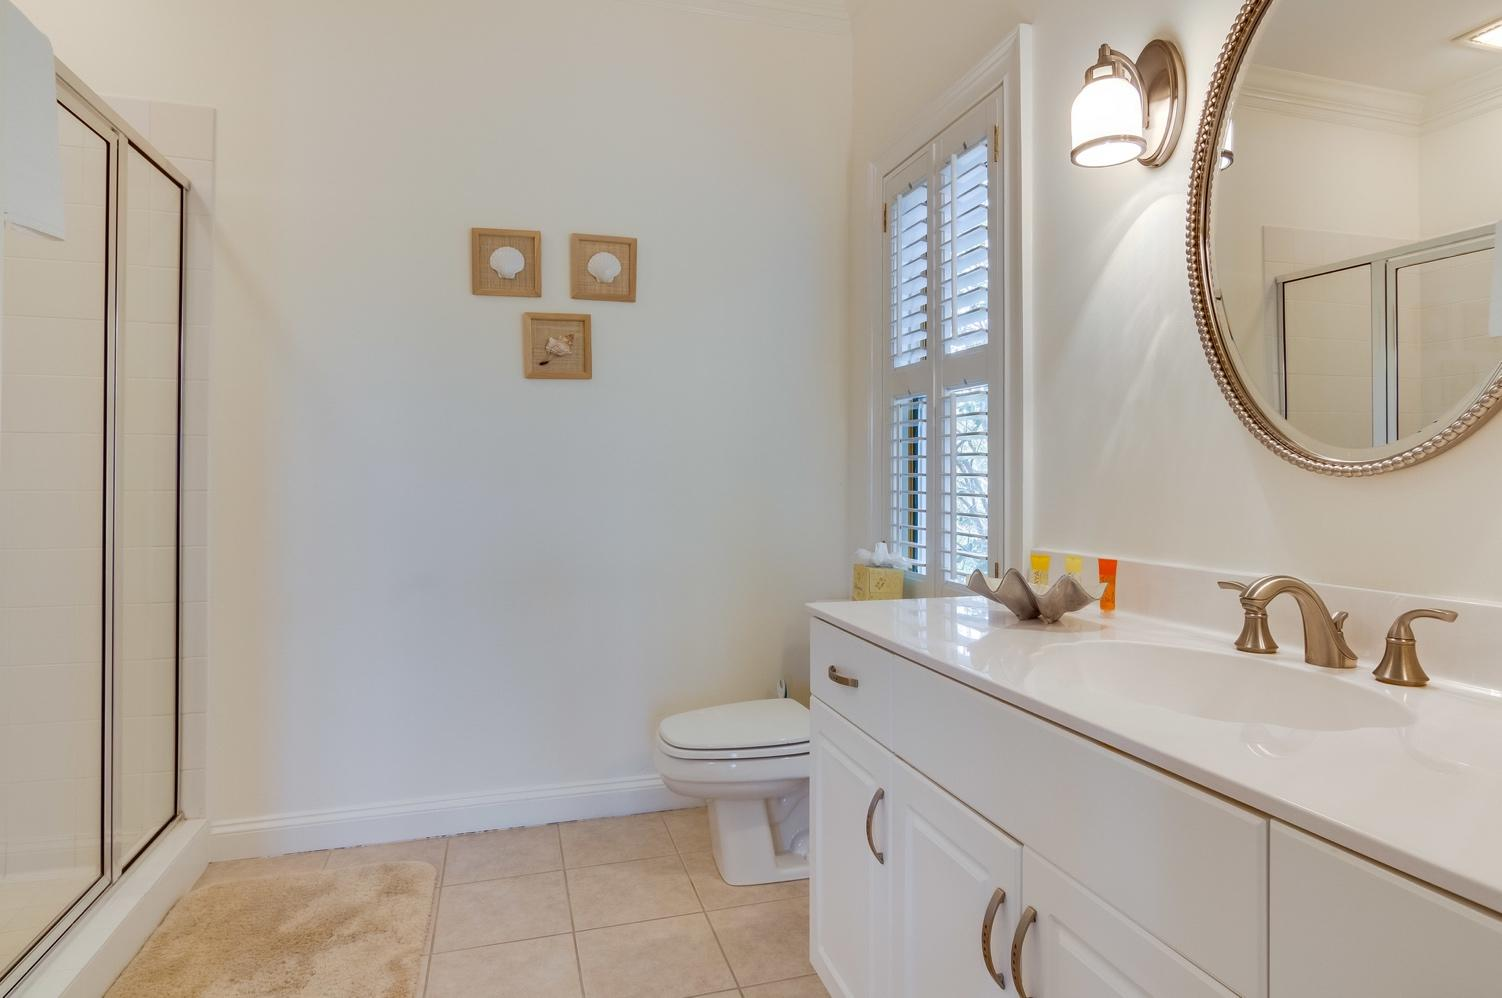 Wild Dunes Homes For Sale - 1 Ocean Point, Isle of Palms, SC - 27